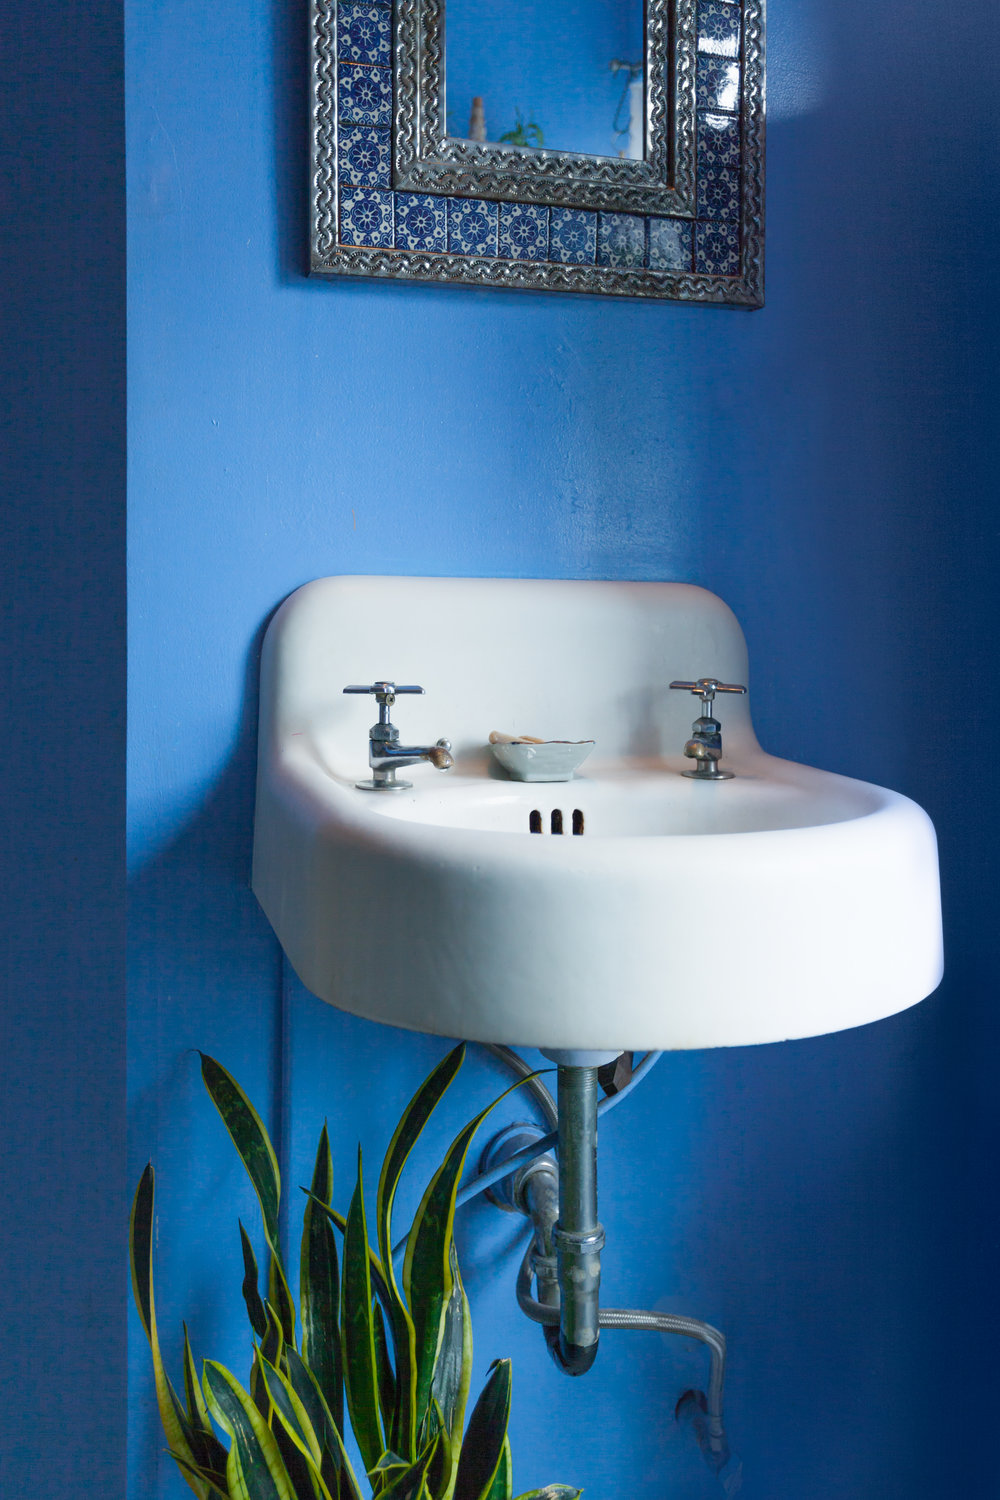 01_Bathroom_8104-Summer-Rayne-Oakes_Sink.jpg